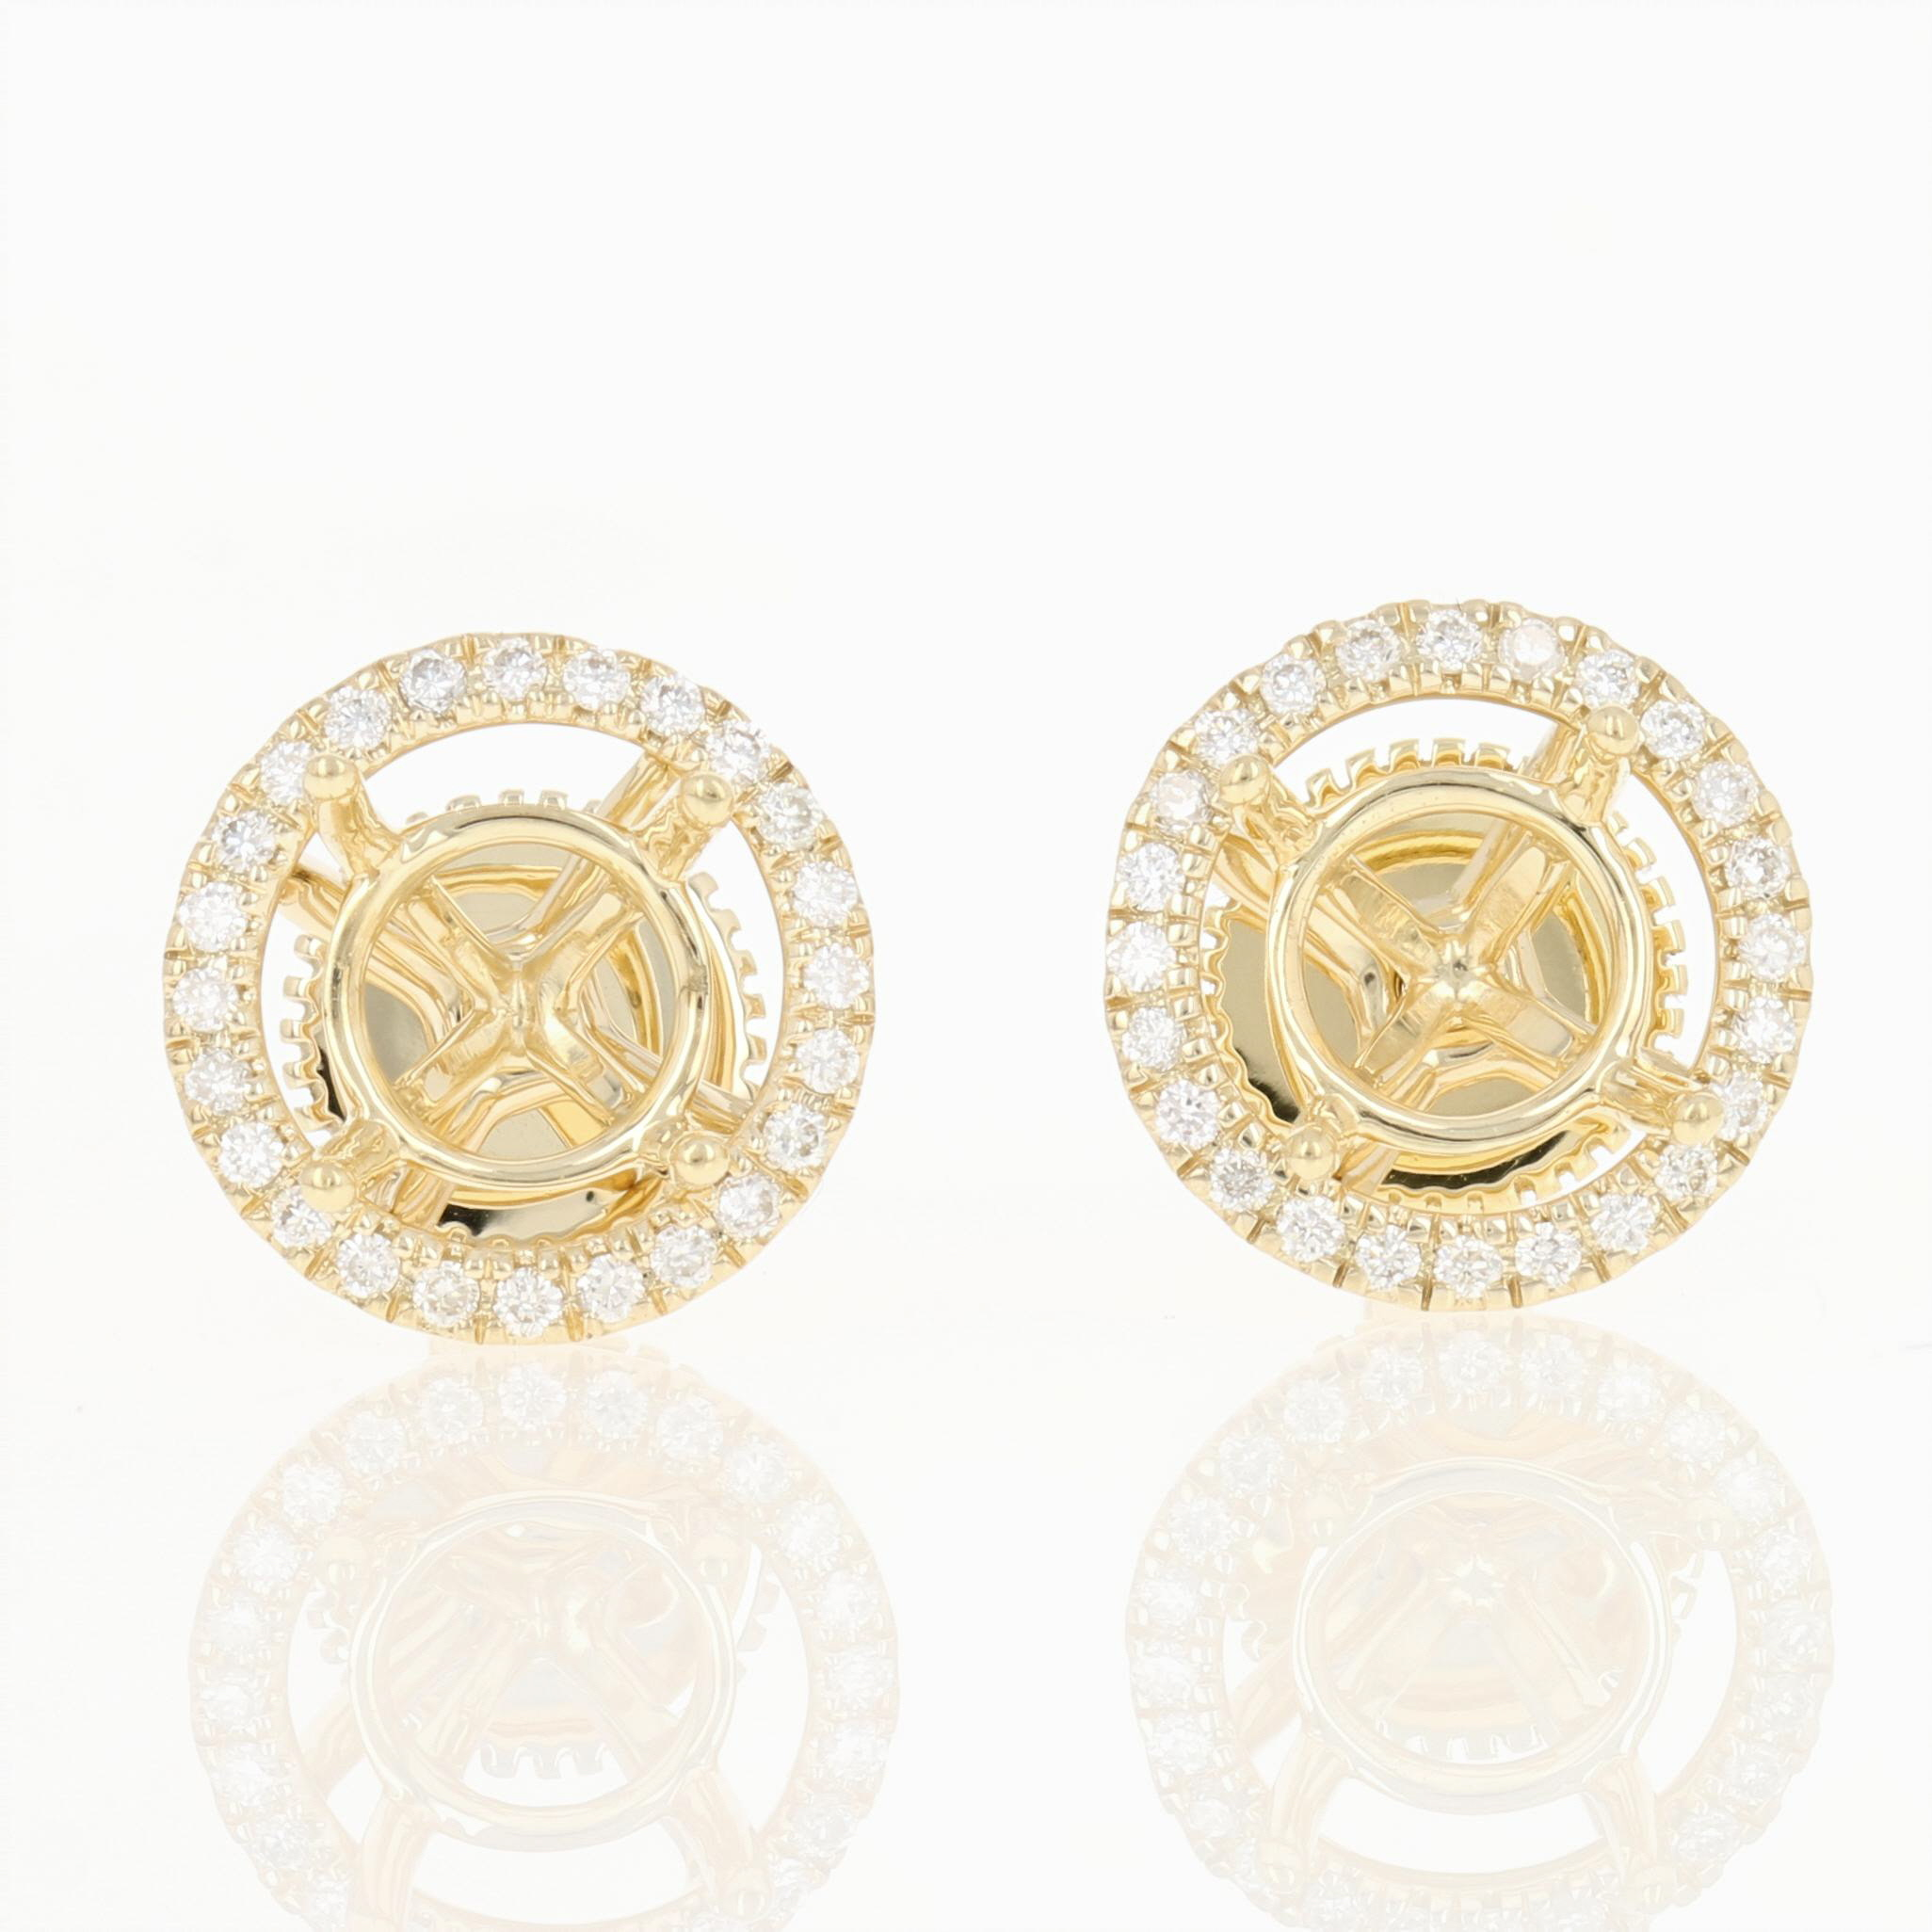 2327449352b86 Details about NEW Semi-Mount Stud Earrings 14k Gold w/ Removable Diamond  Halo Enhancers .16ctw